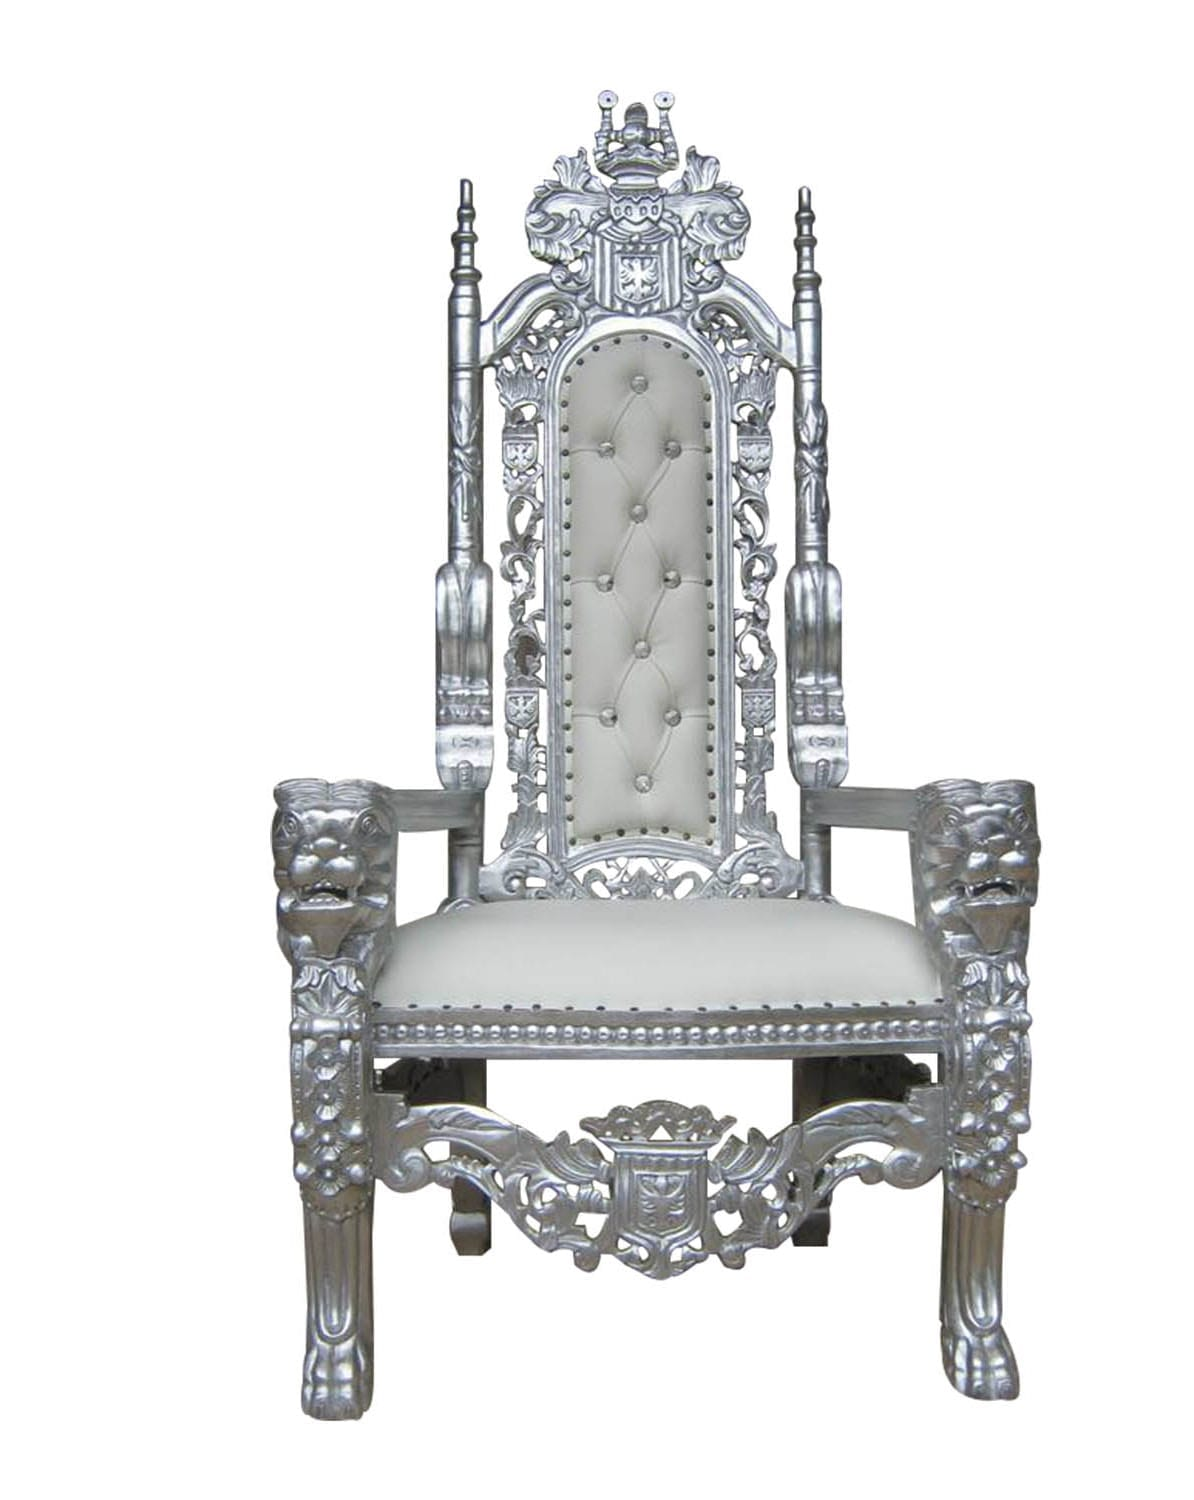 King And Queen Throne Chairs For Rent Silver Throne Chair Del Rey Party Rentals